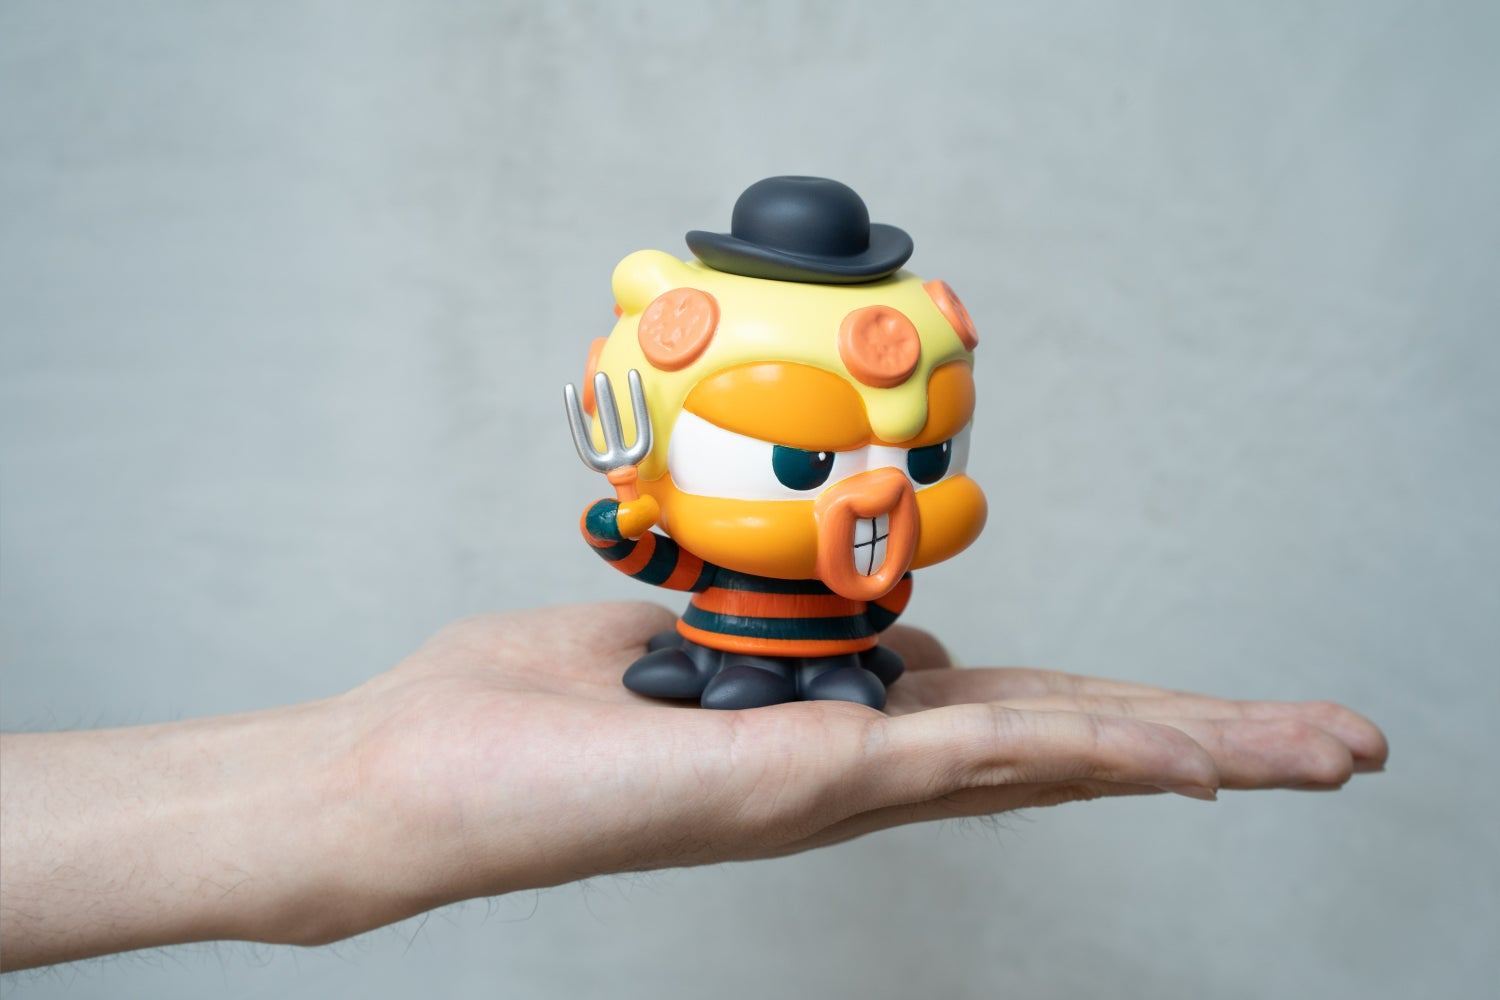 Image of QTAKO HALLOWEEN SPECIAL EDITION PRE-ORDER